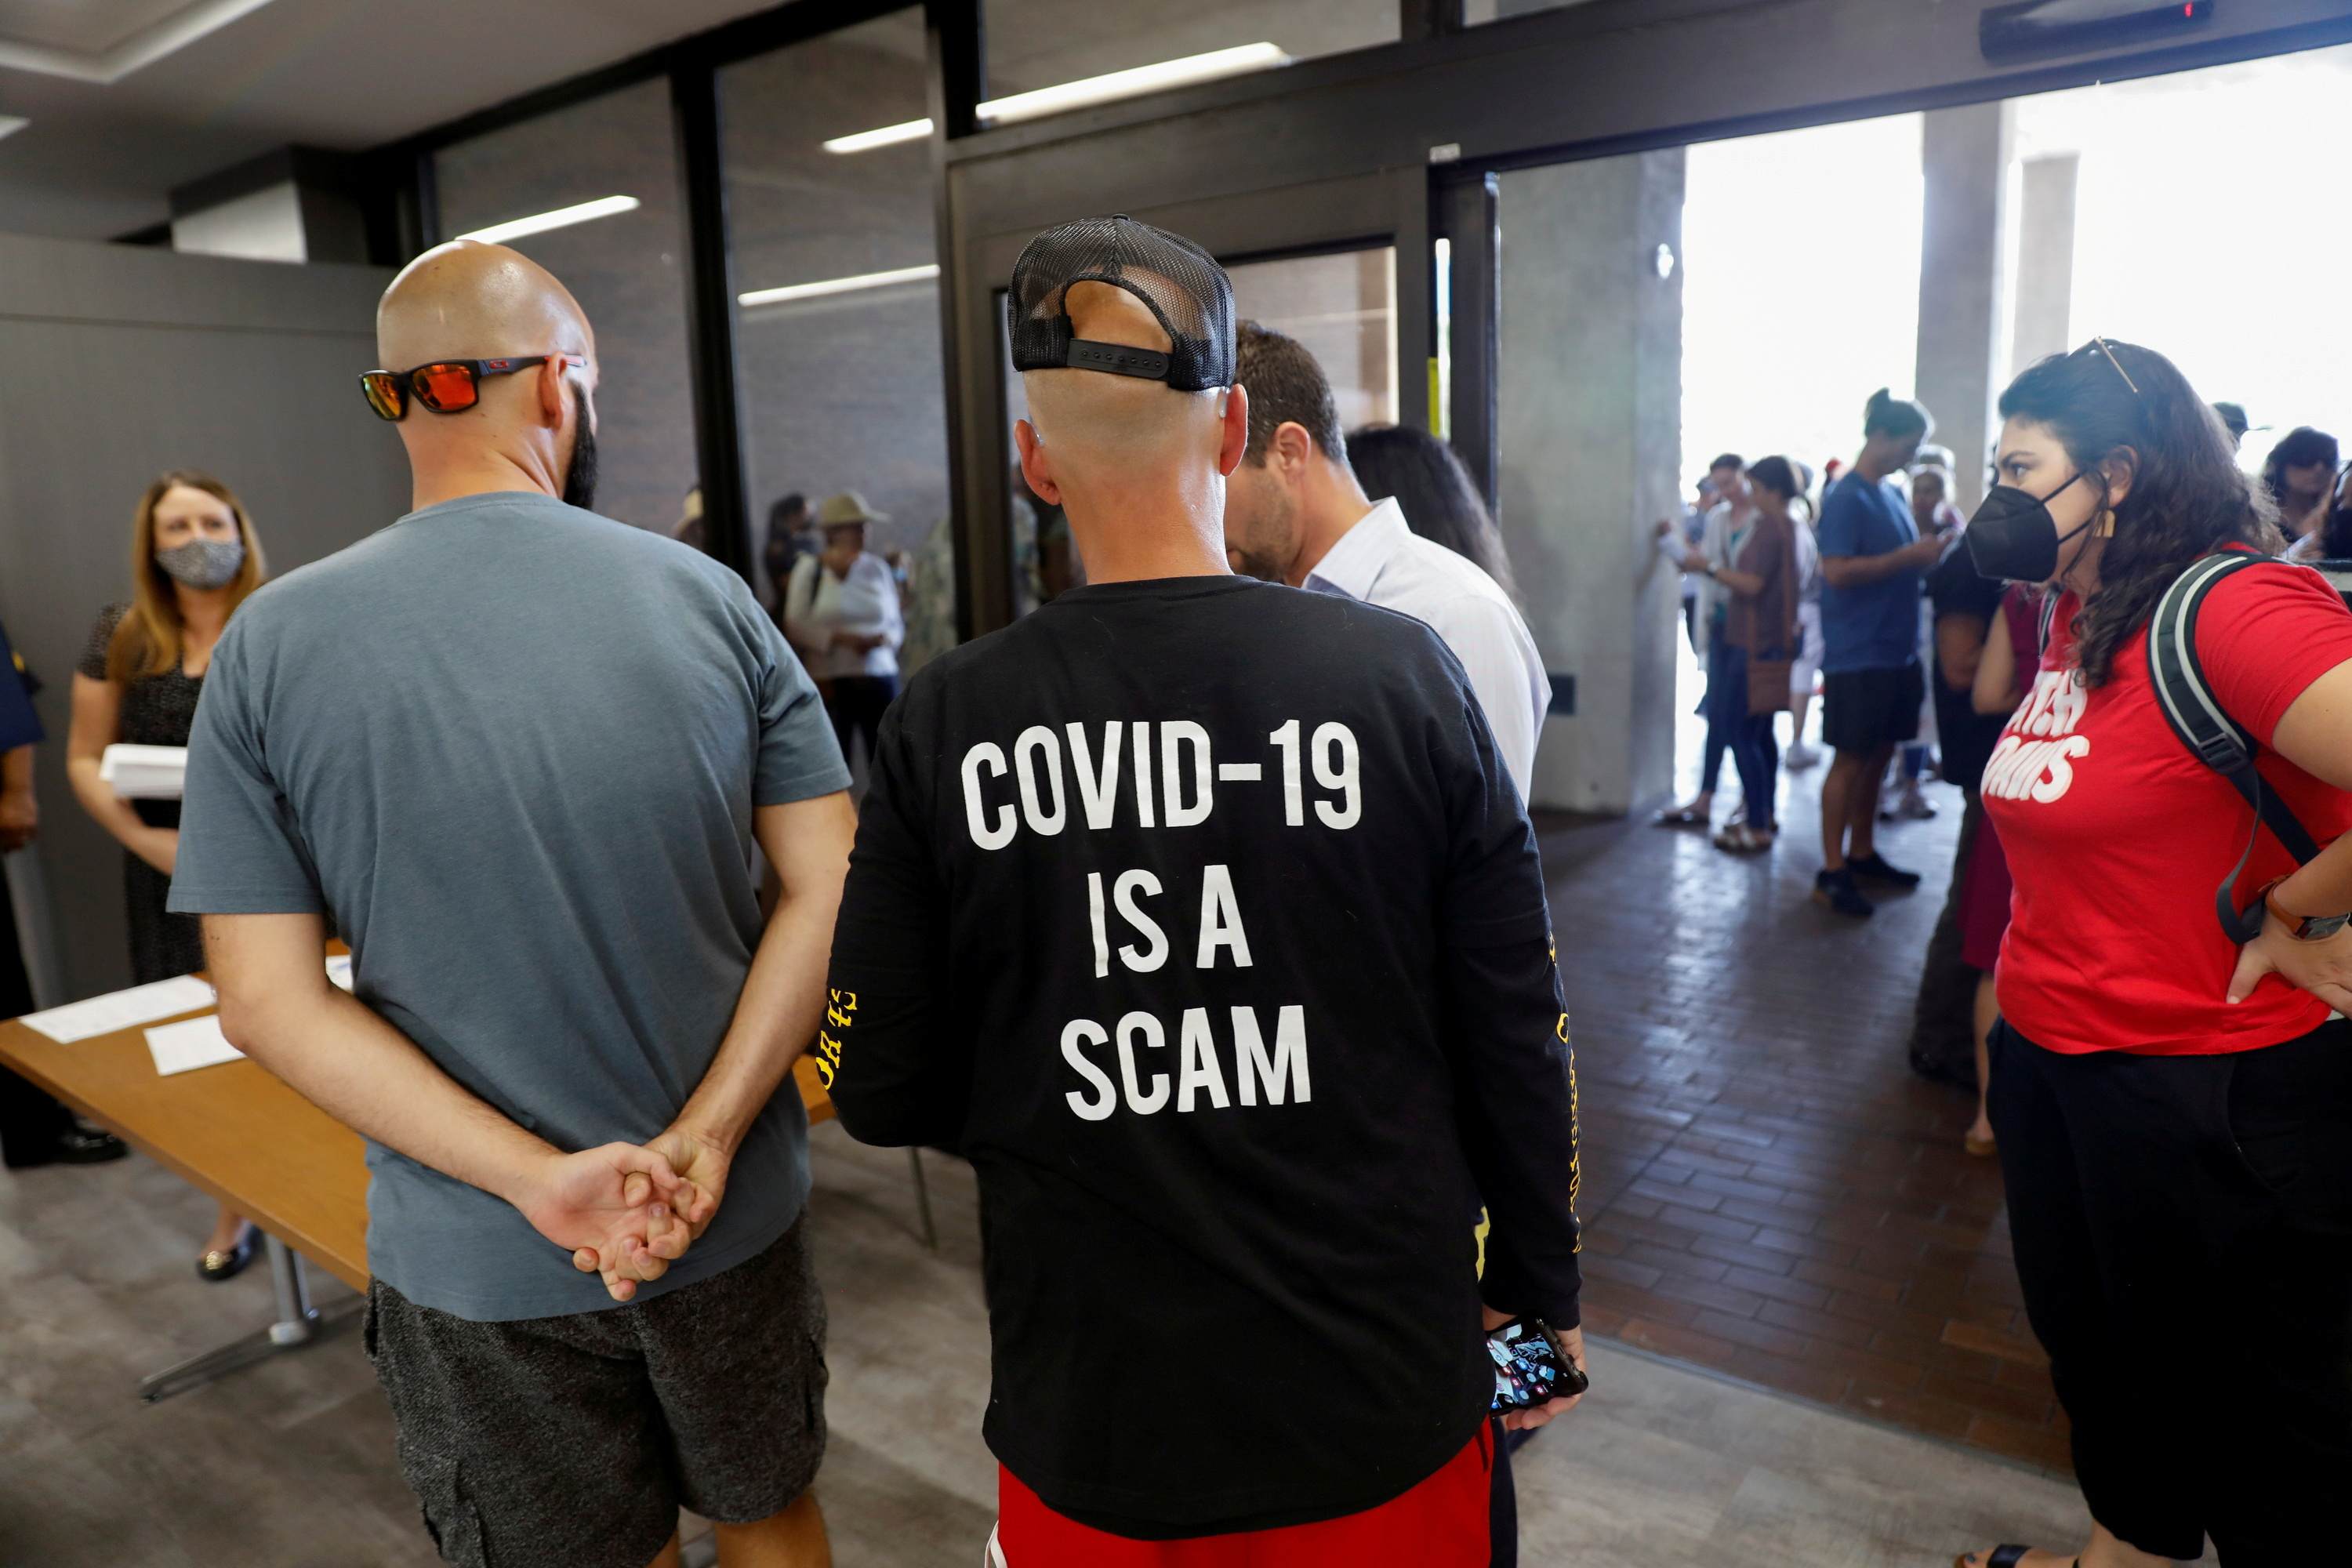 People protest against the school mask mandate, enacted to help slow the spread of COVID-19, outside a Hillsborough County School Board meeting in Tampa, Florida, U.S. May 18, 2021.  REUTERS/Octavio Jones/File Photo